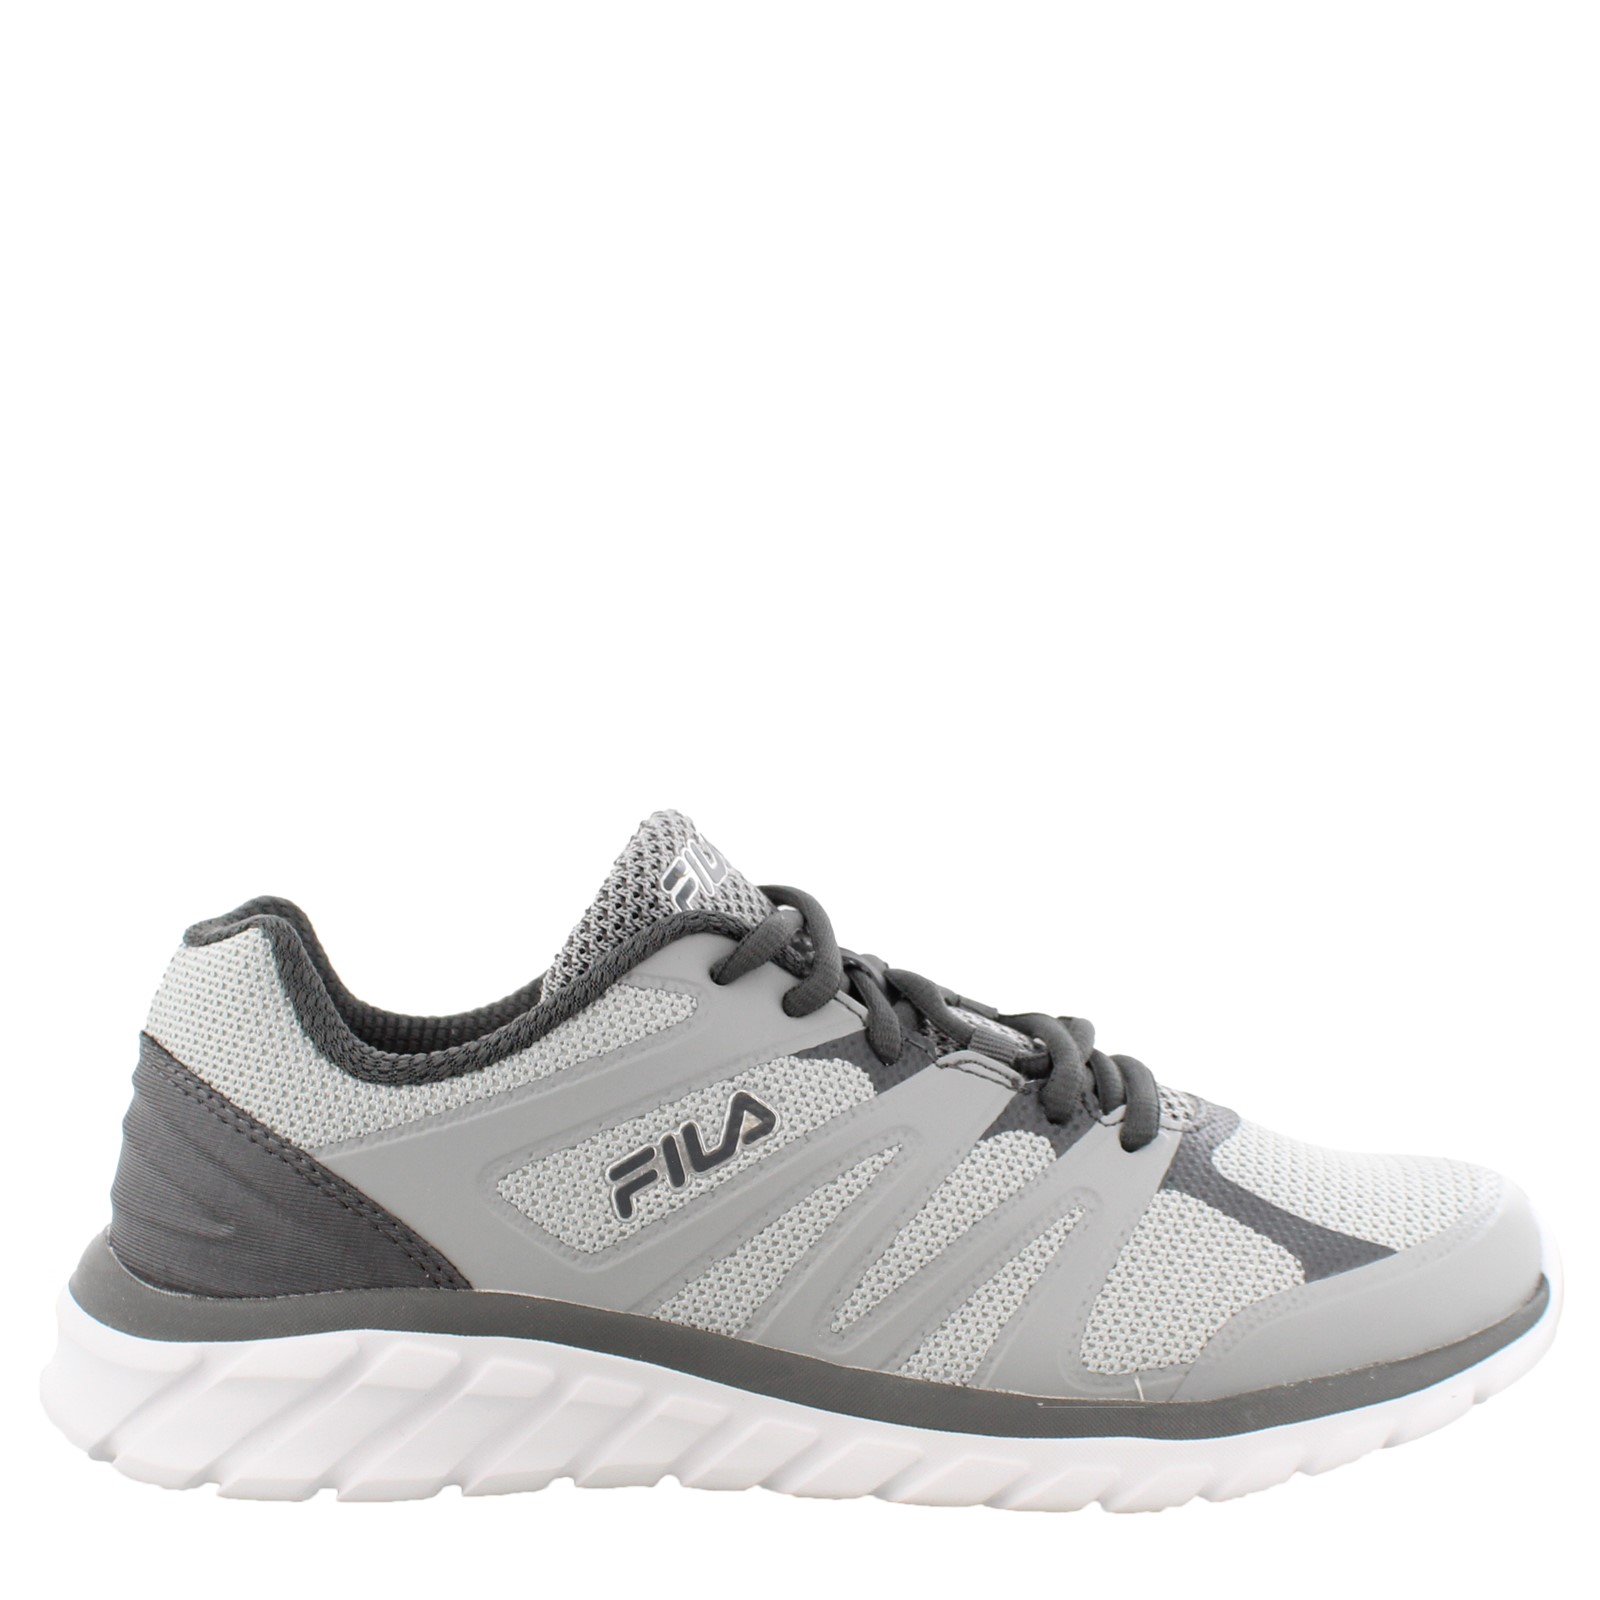 Men's Fila, Memory Cryptonic 3 Running Sneaker